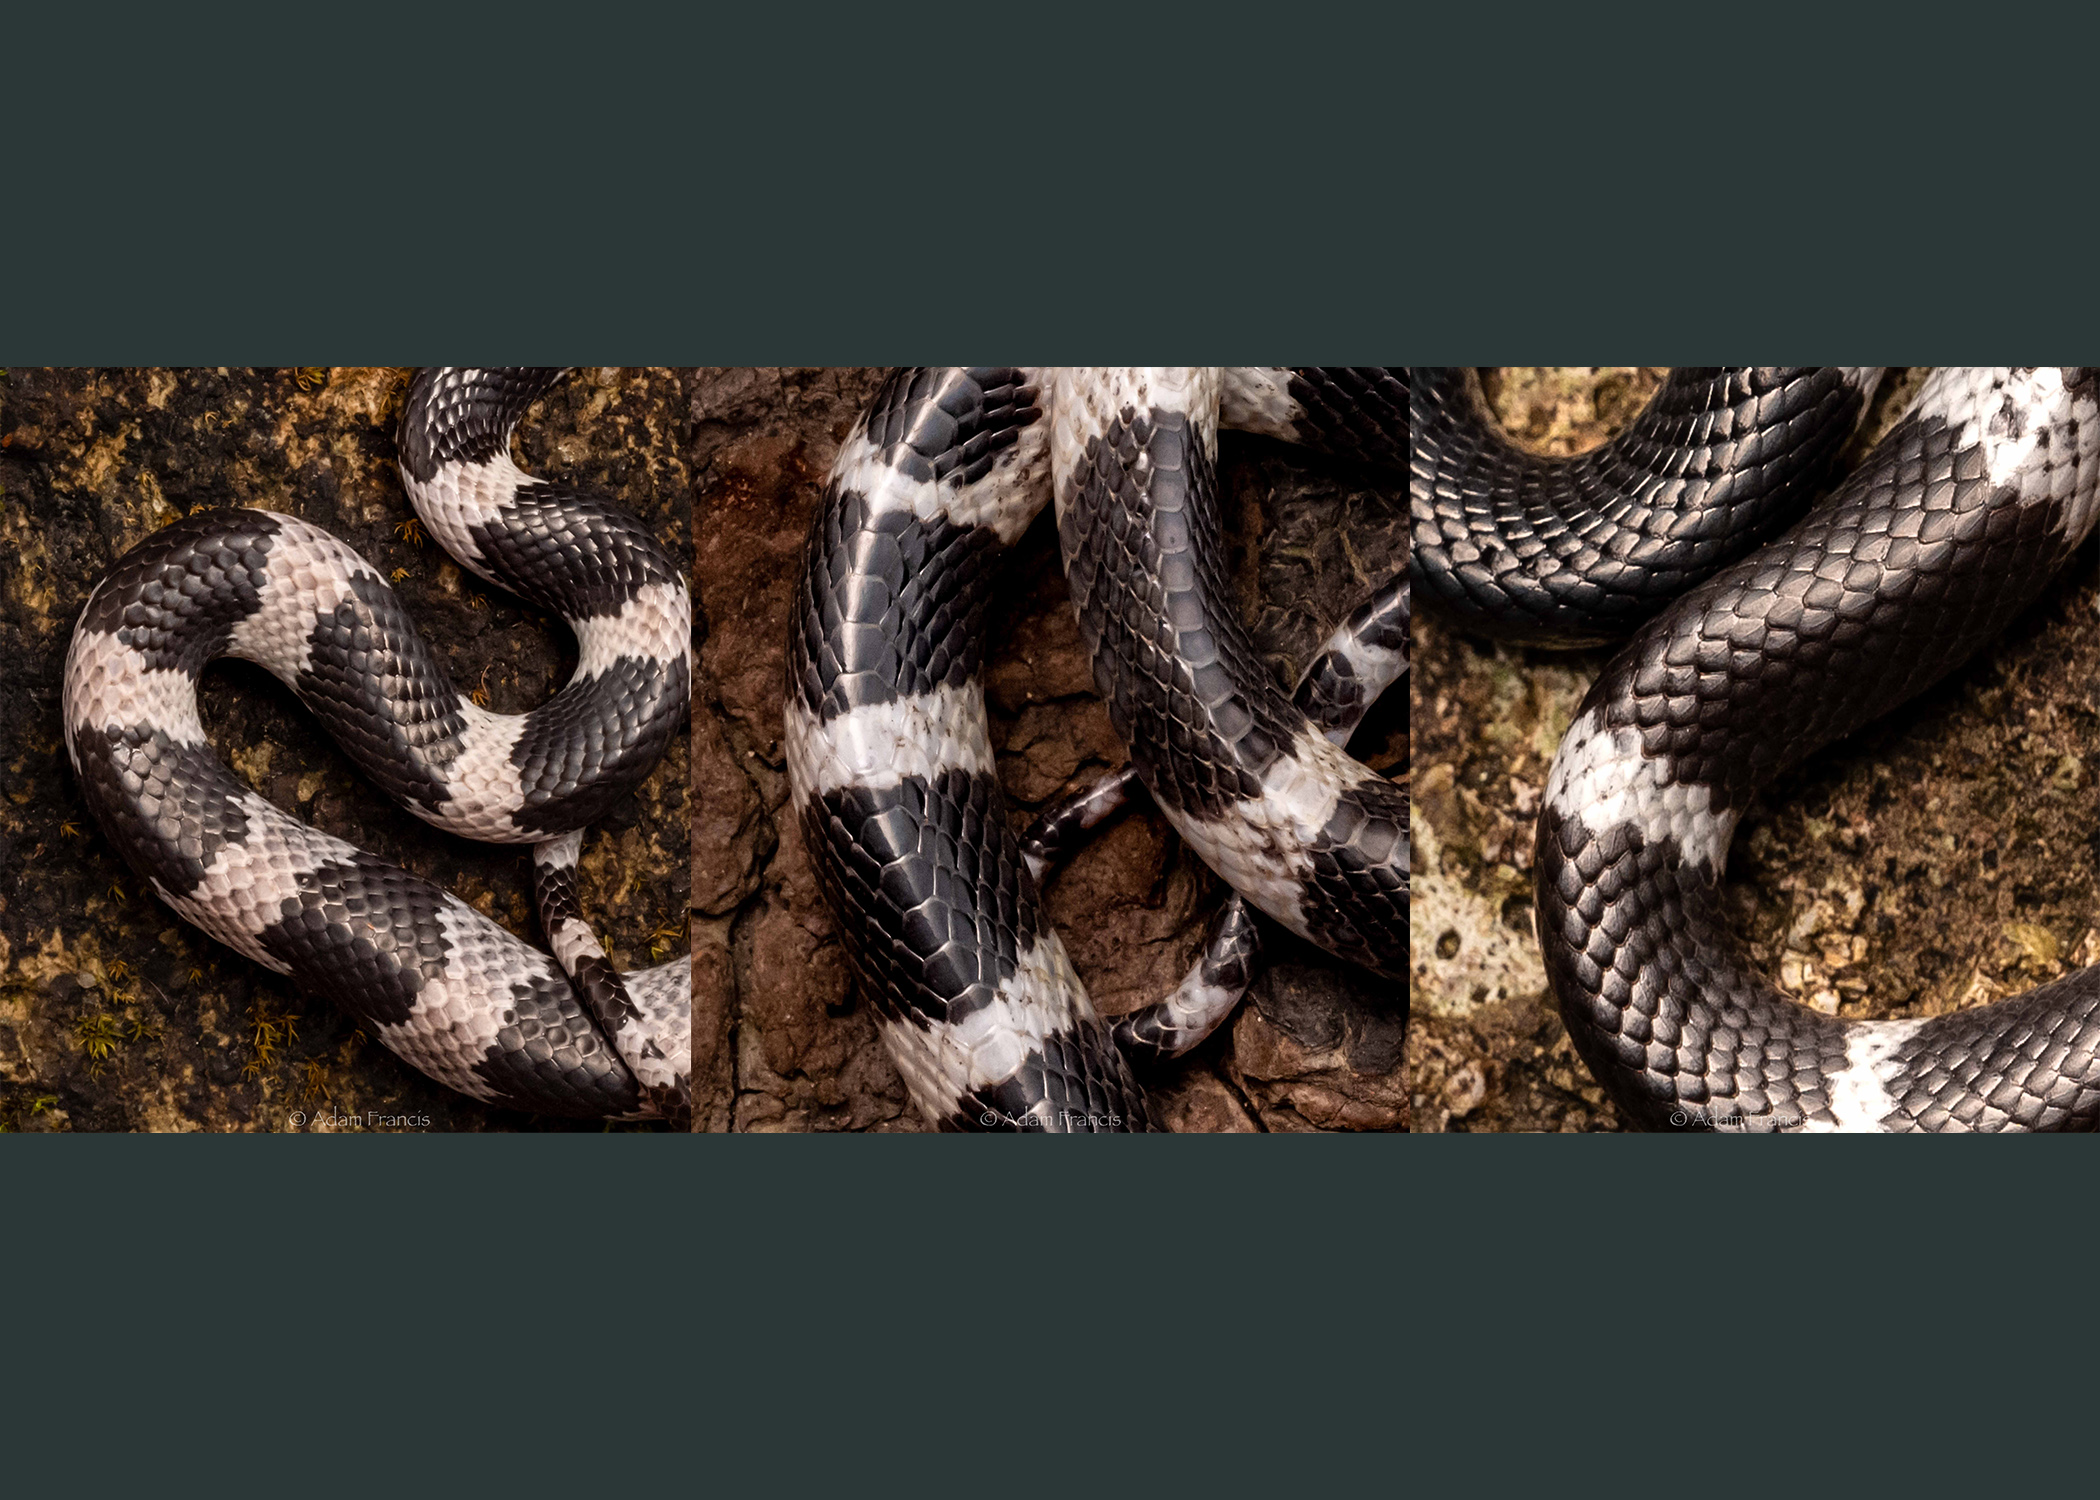 From left to right: Futsing's Wolf Snake, Many Banded Krait, Banded Wolf Snake